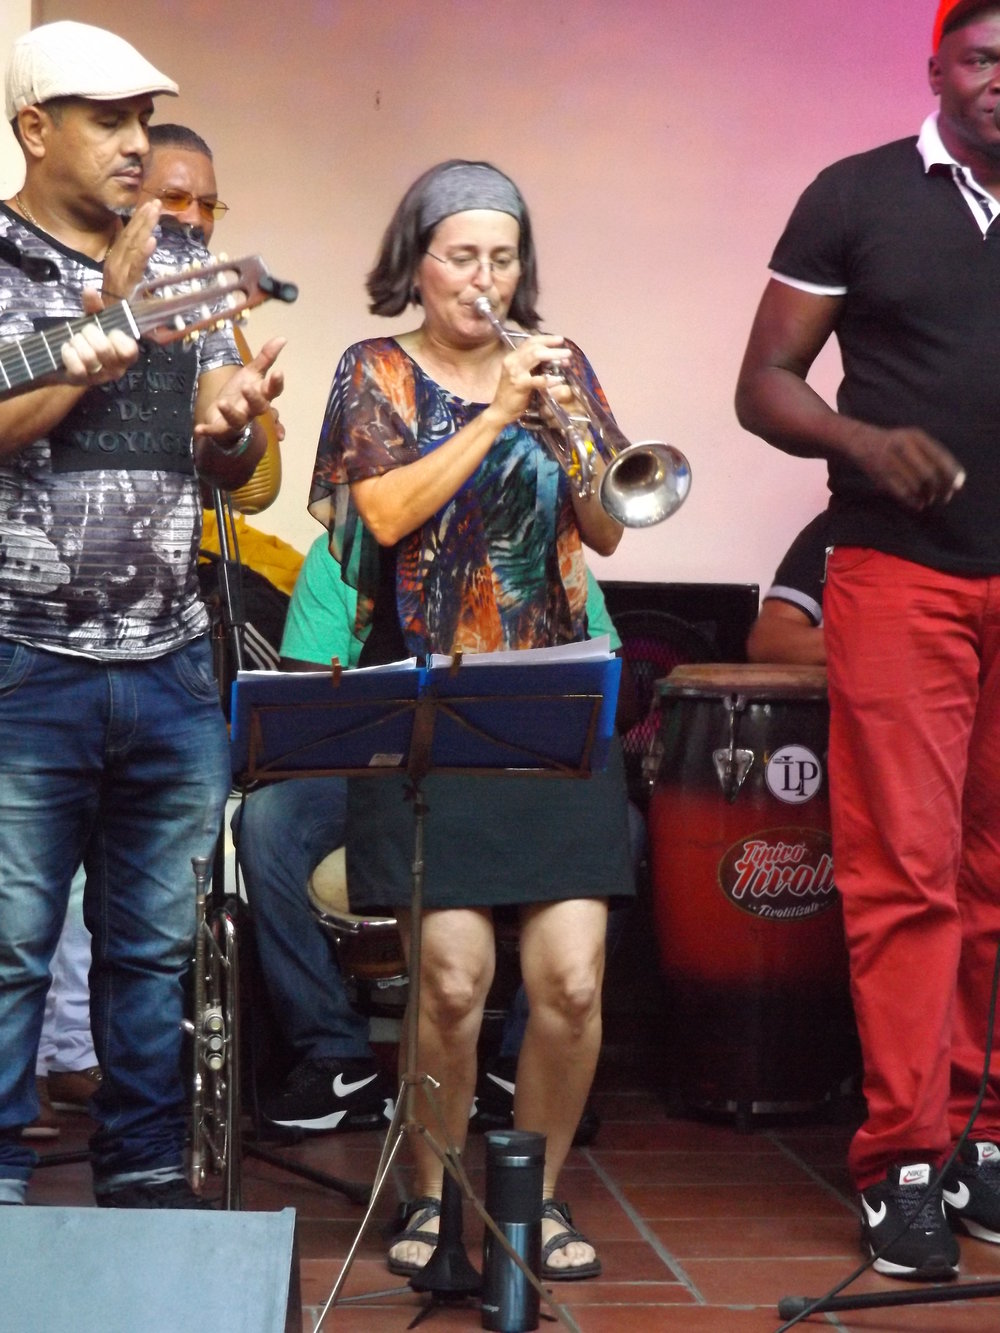 Patty live on stage with Septeto Tipico Tivoli in Cuba (March 2018)!